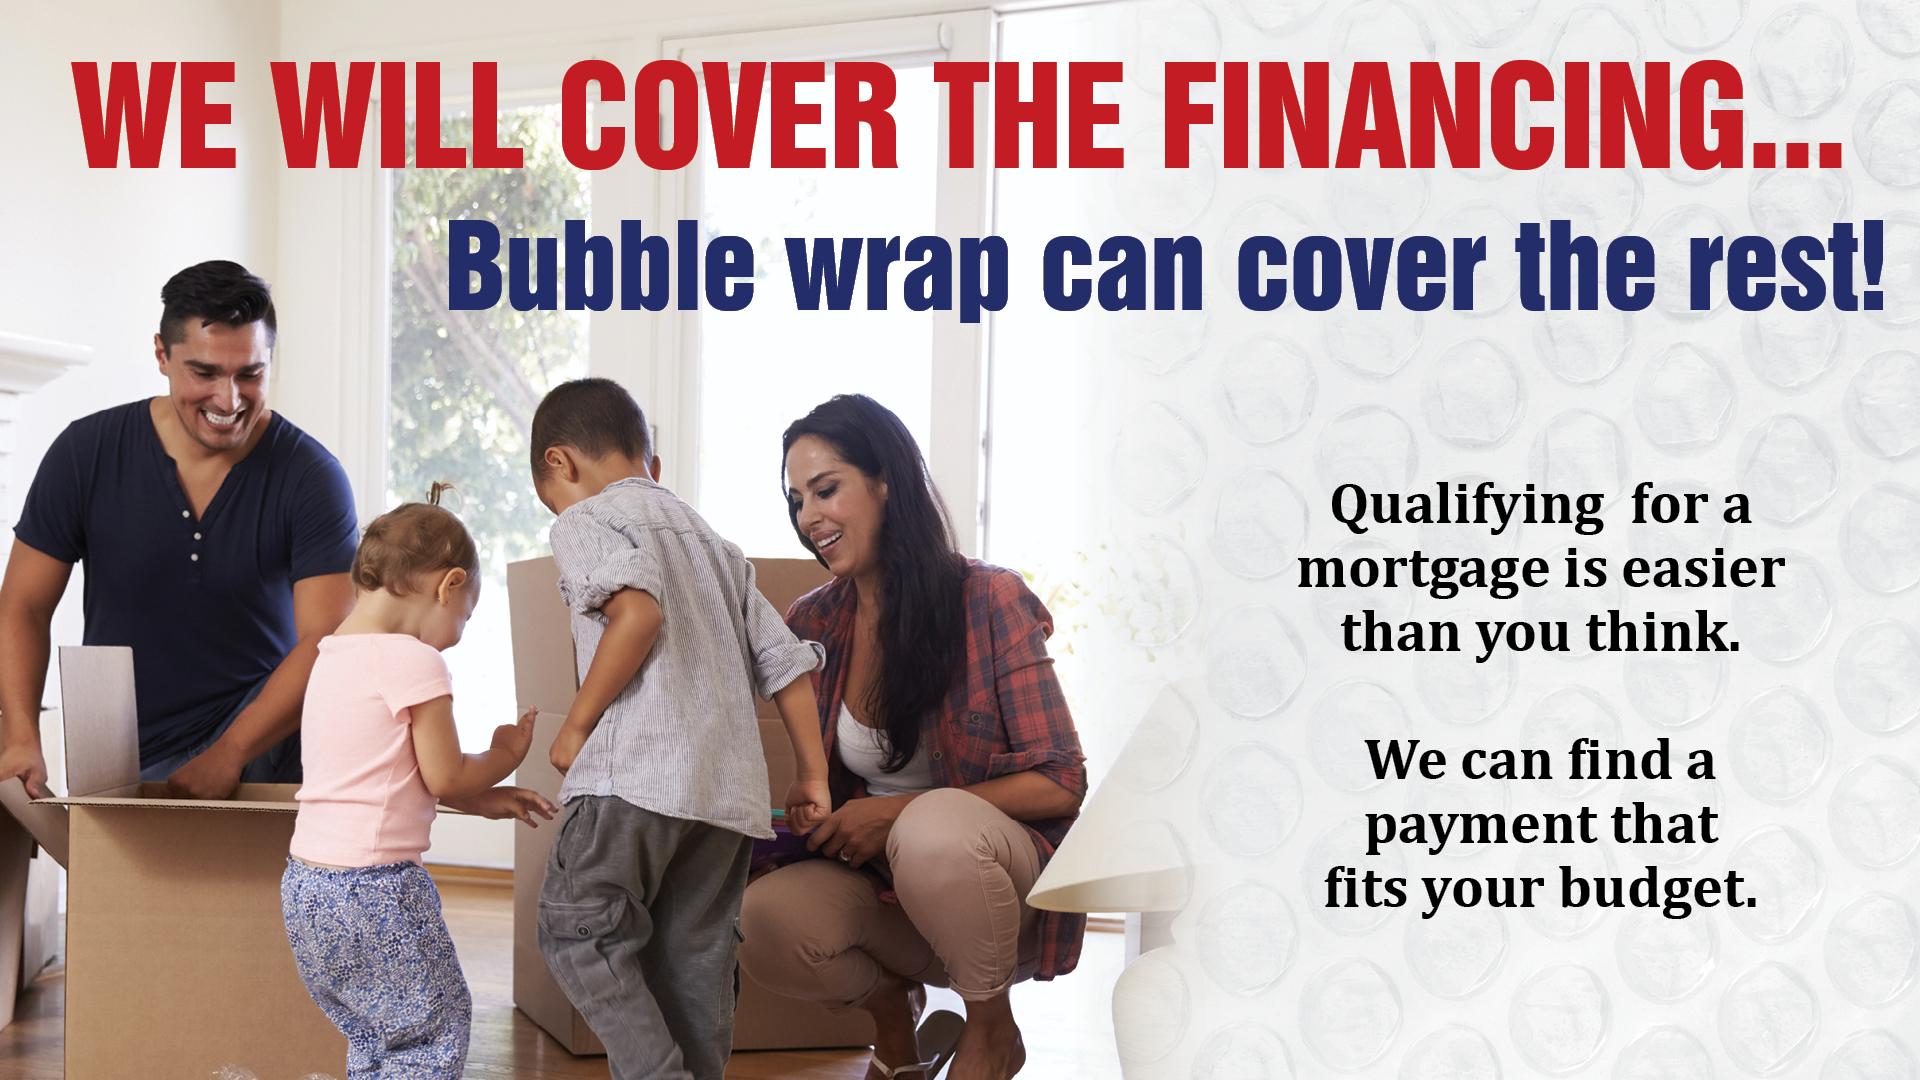 We will cover the mortgage financing...bubble wrap can cover the rest!